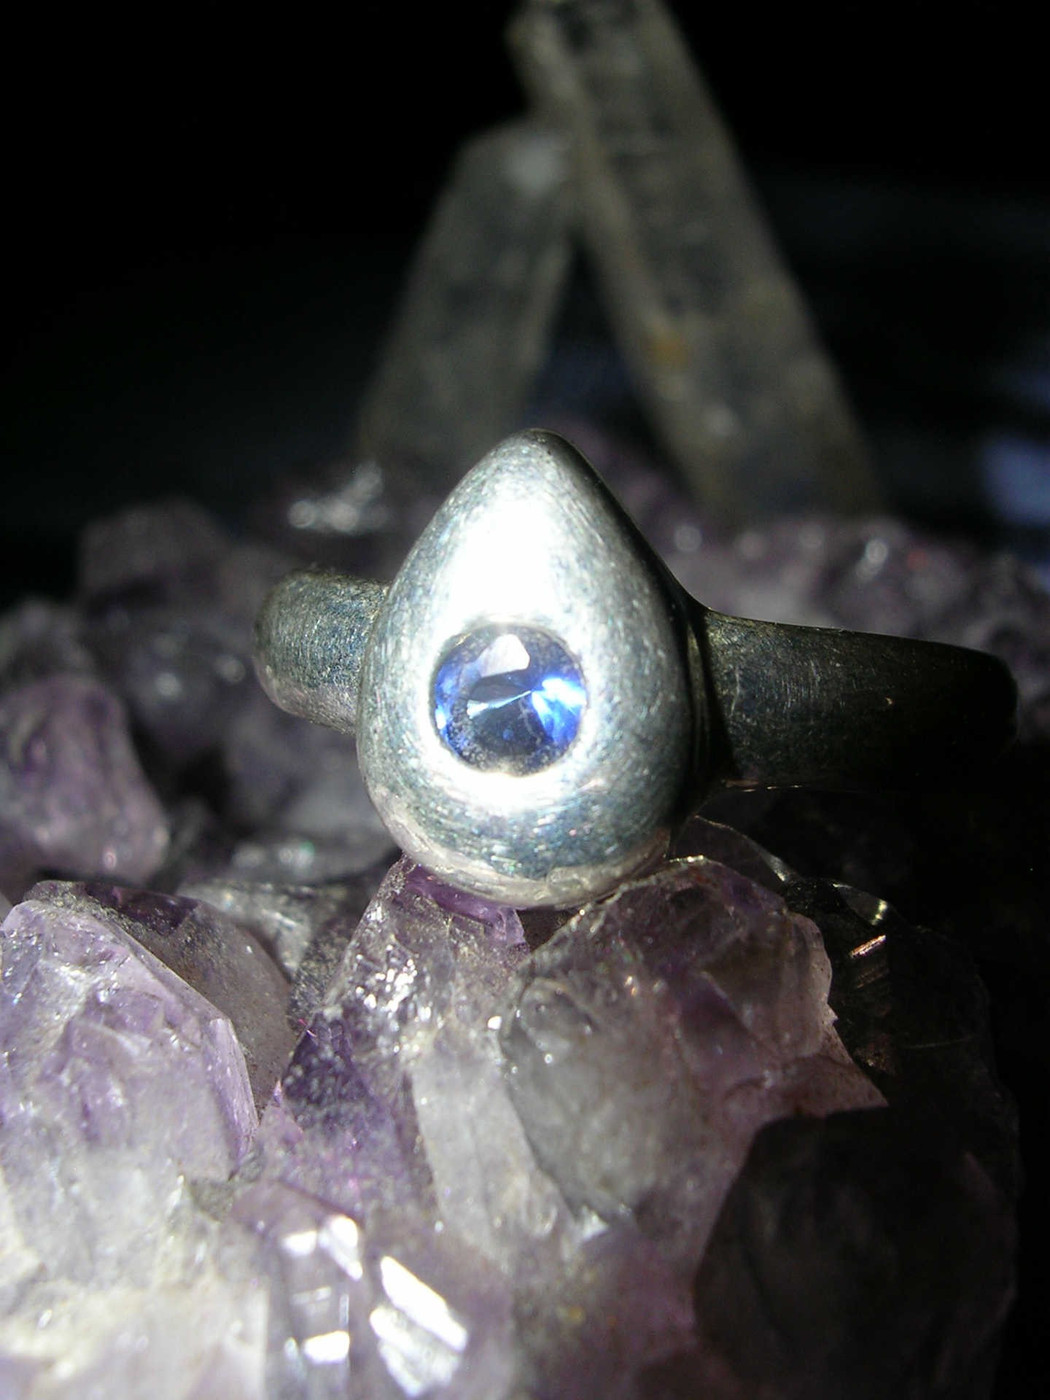 Manifestation & Enlightenment Ring! Focus & Direct Your Personal Energy!